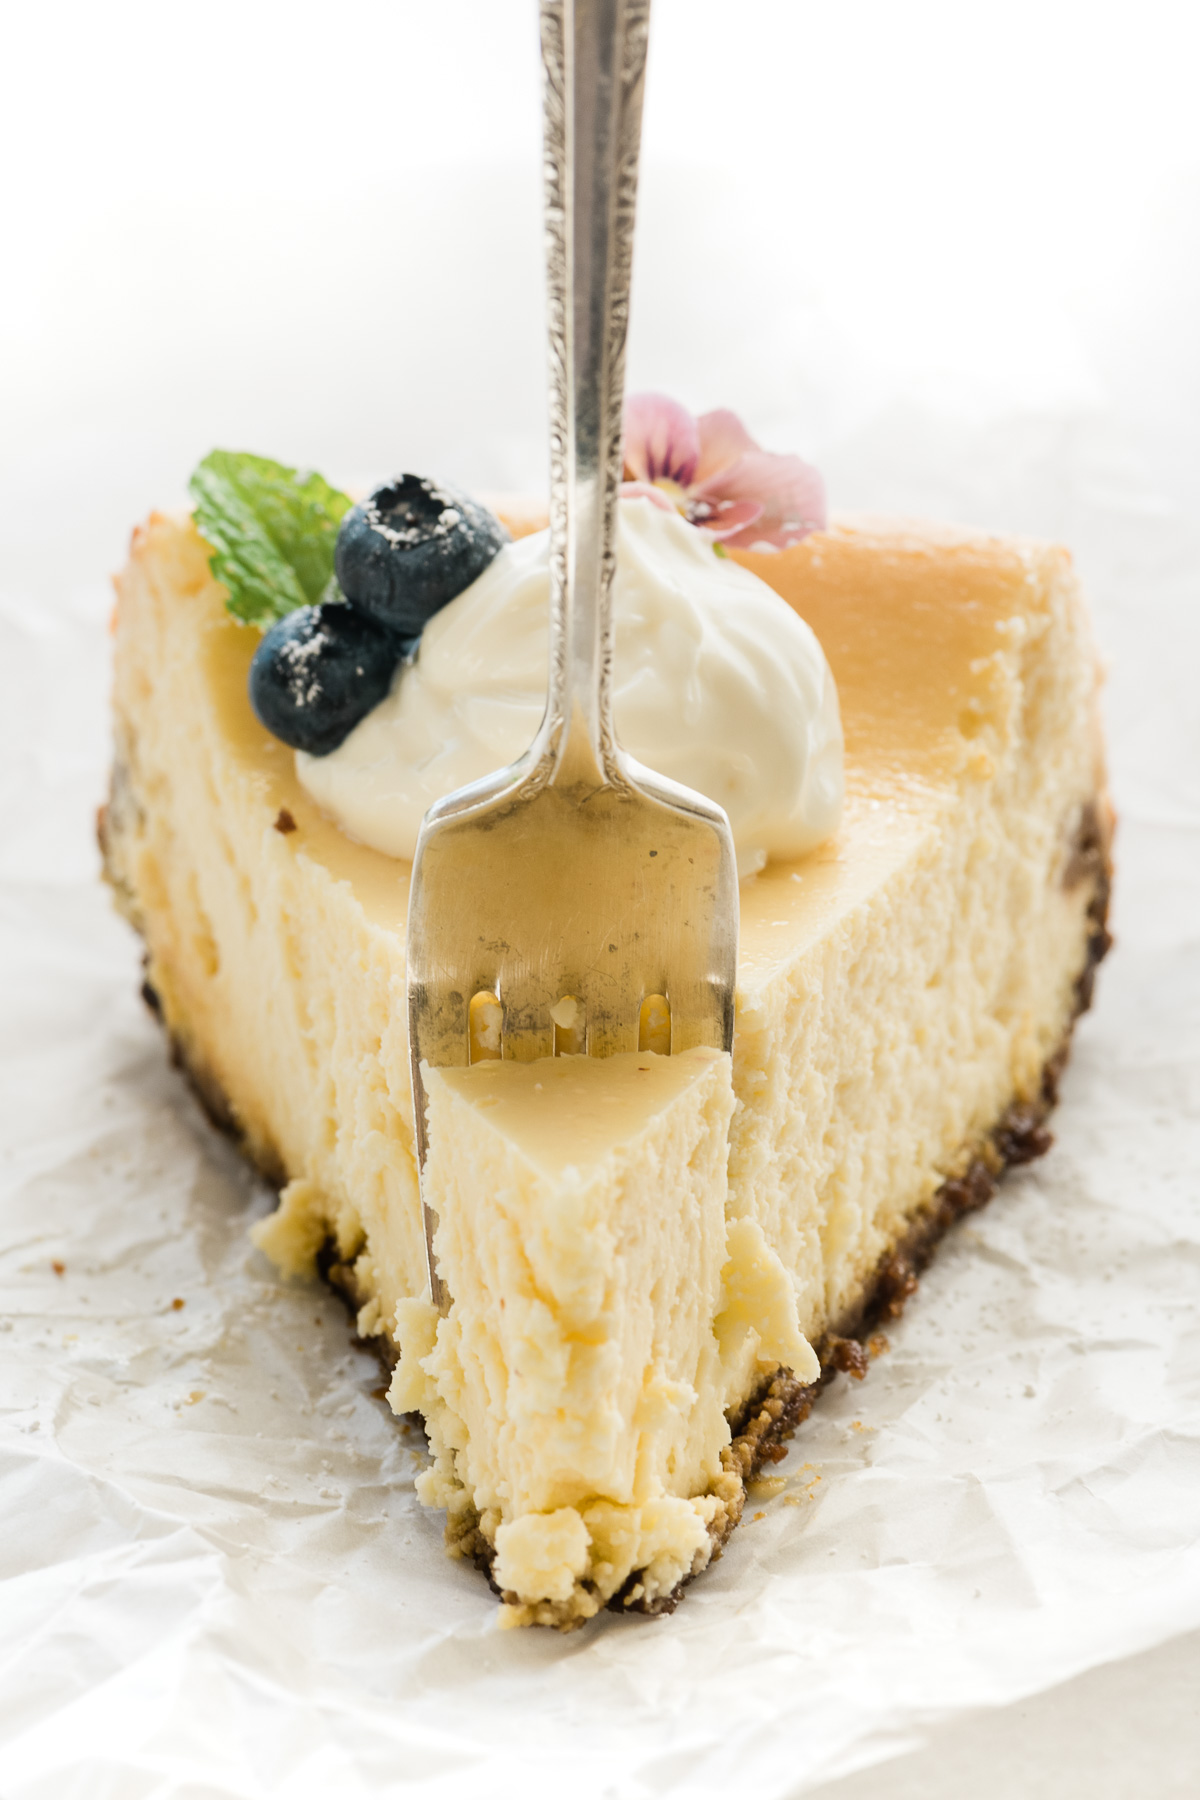 A slice of lemon cheesecake with fork